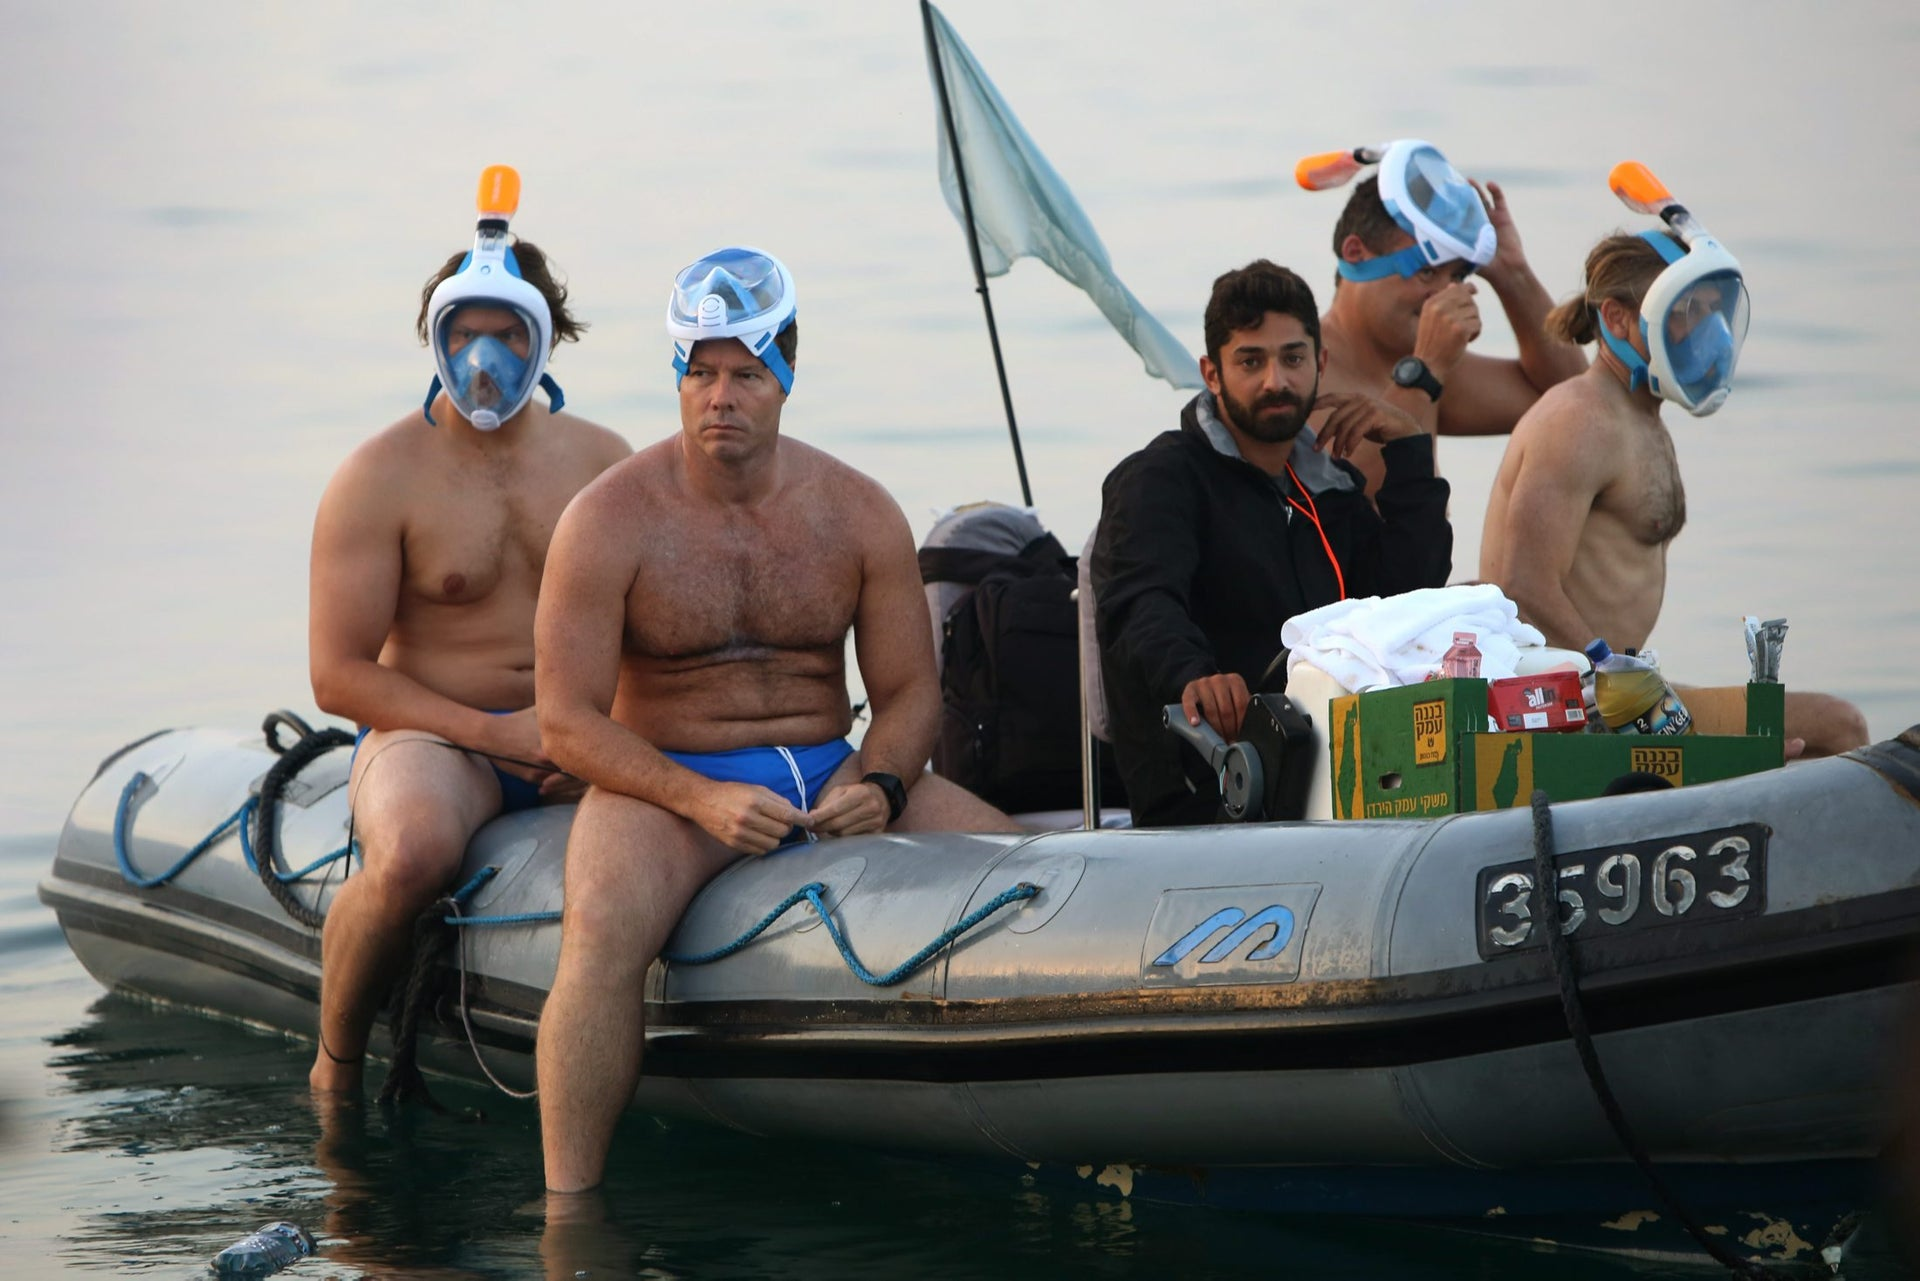 Participants taking part in a 16 kilometers swim from Jordan to Israel across the Dead Sea, organised by the EcoPeace charity aimed at raising awareness for the iconic water body which has been receding by roughly a metre each year, gives the thumbs up upon the departure from Jordan on November 15, 2016. The 27 extreme swimmers from across the world, equipped with special masks due to the water's high salinity, took seven hours to make the crossing, organisers said. The distance is only 18 kilometres and the mineral-rich lake was calm, but the high amount of salt in the water makes it nearly impossible to swim normally.